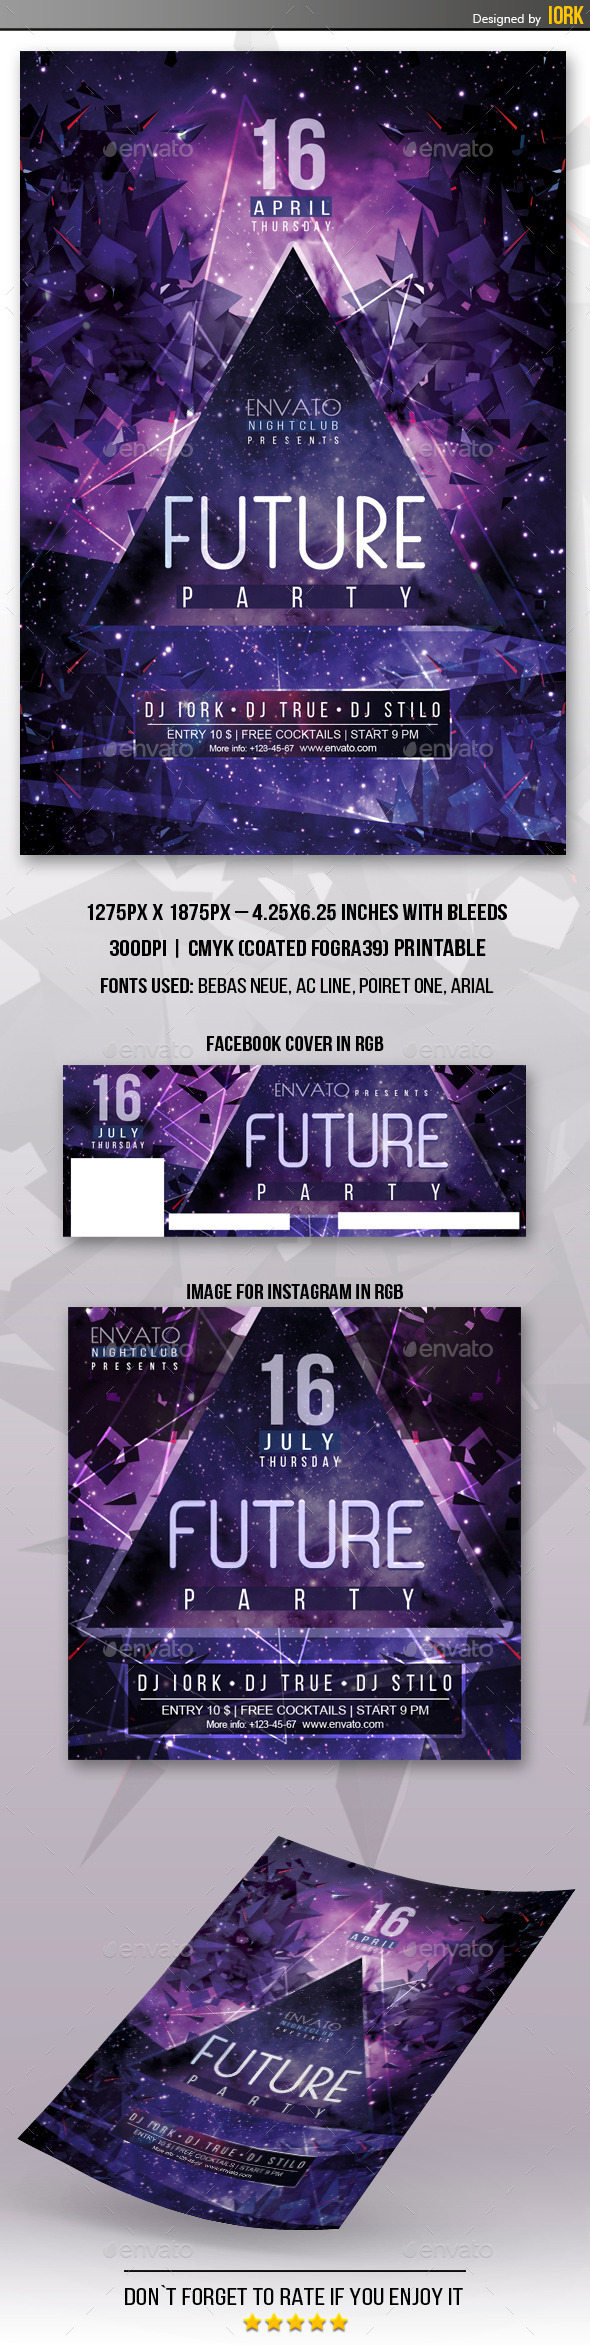 Future Party Flyer - Flyers Print Templates